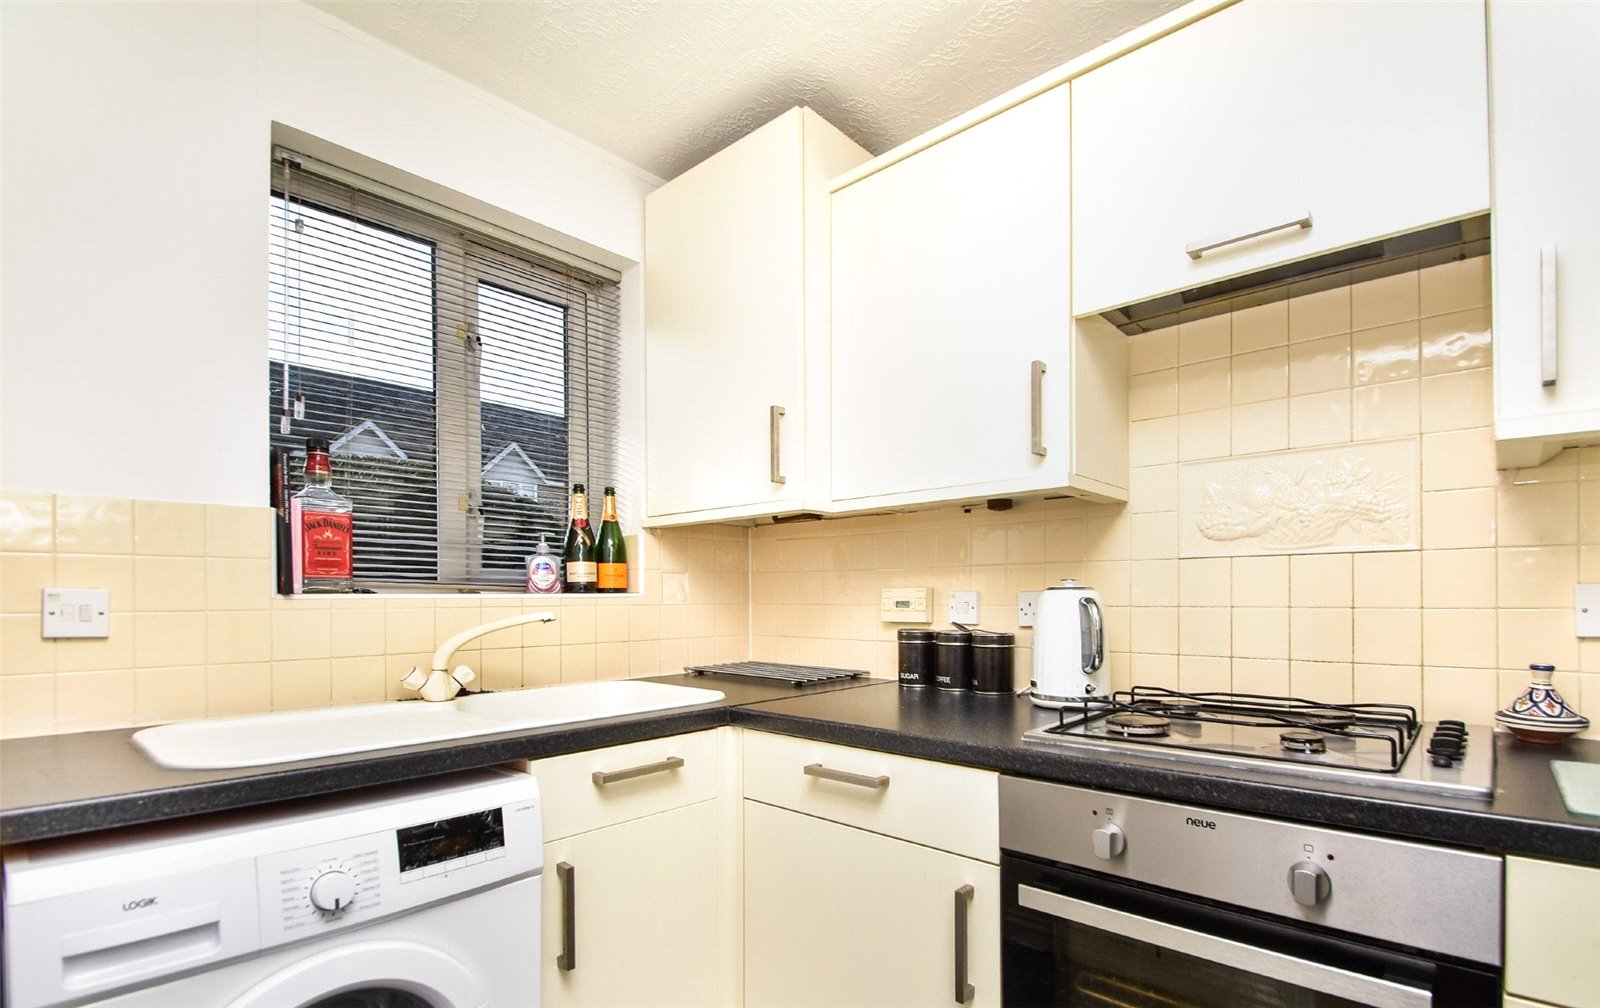 2 bed house to rent in New Southgate, N11 3PY 2